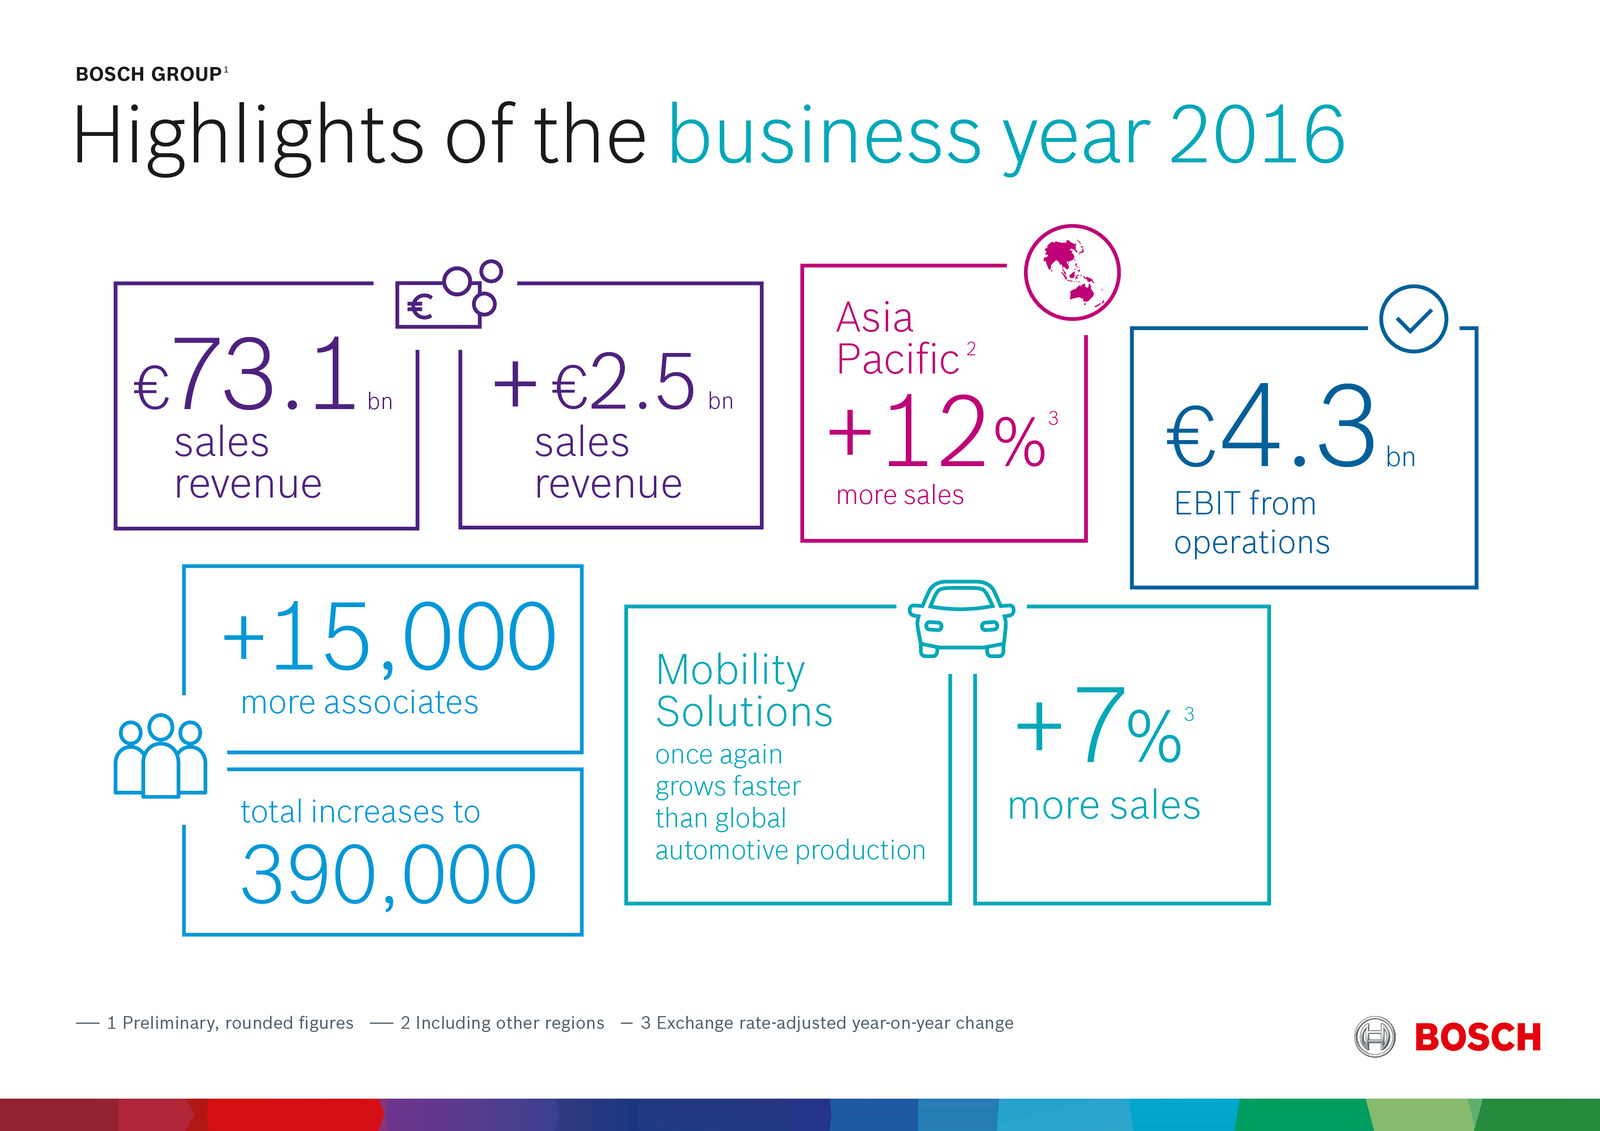 Highlights of the business year 2016